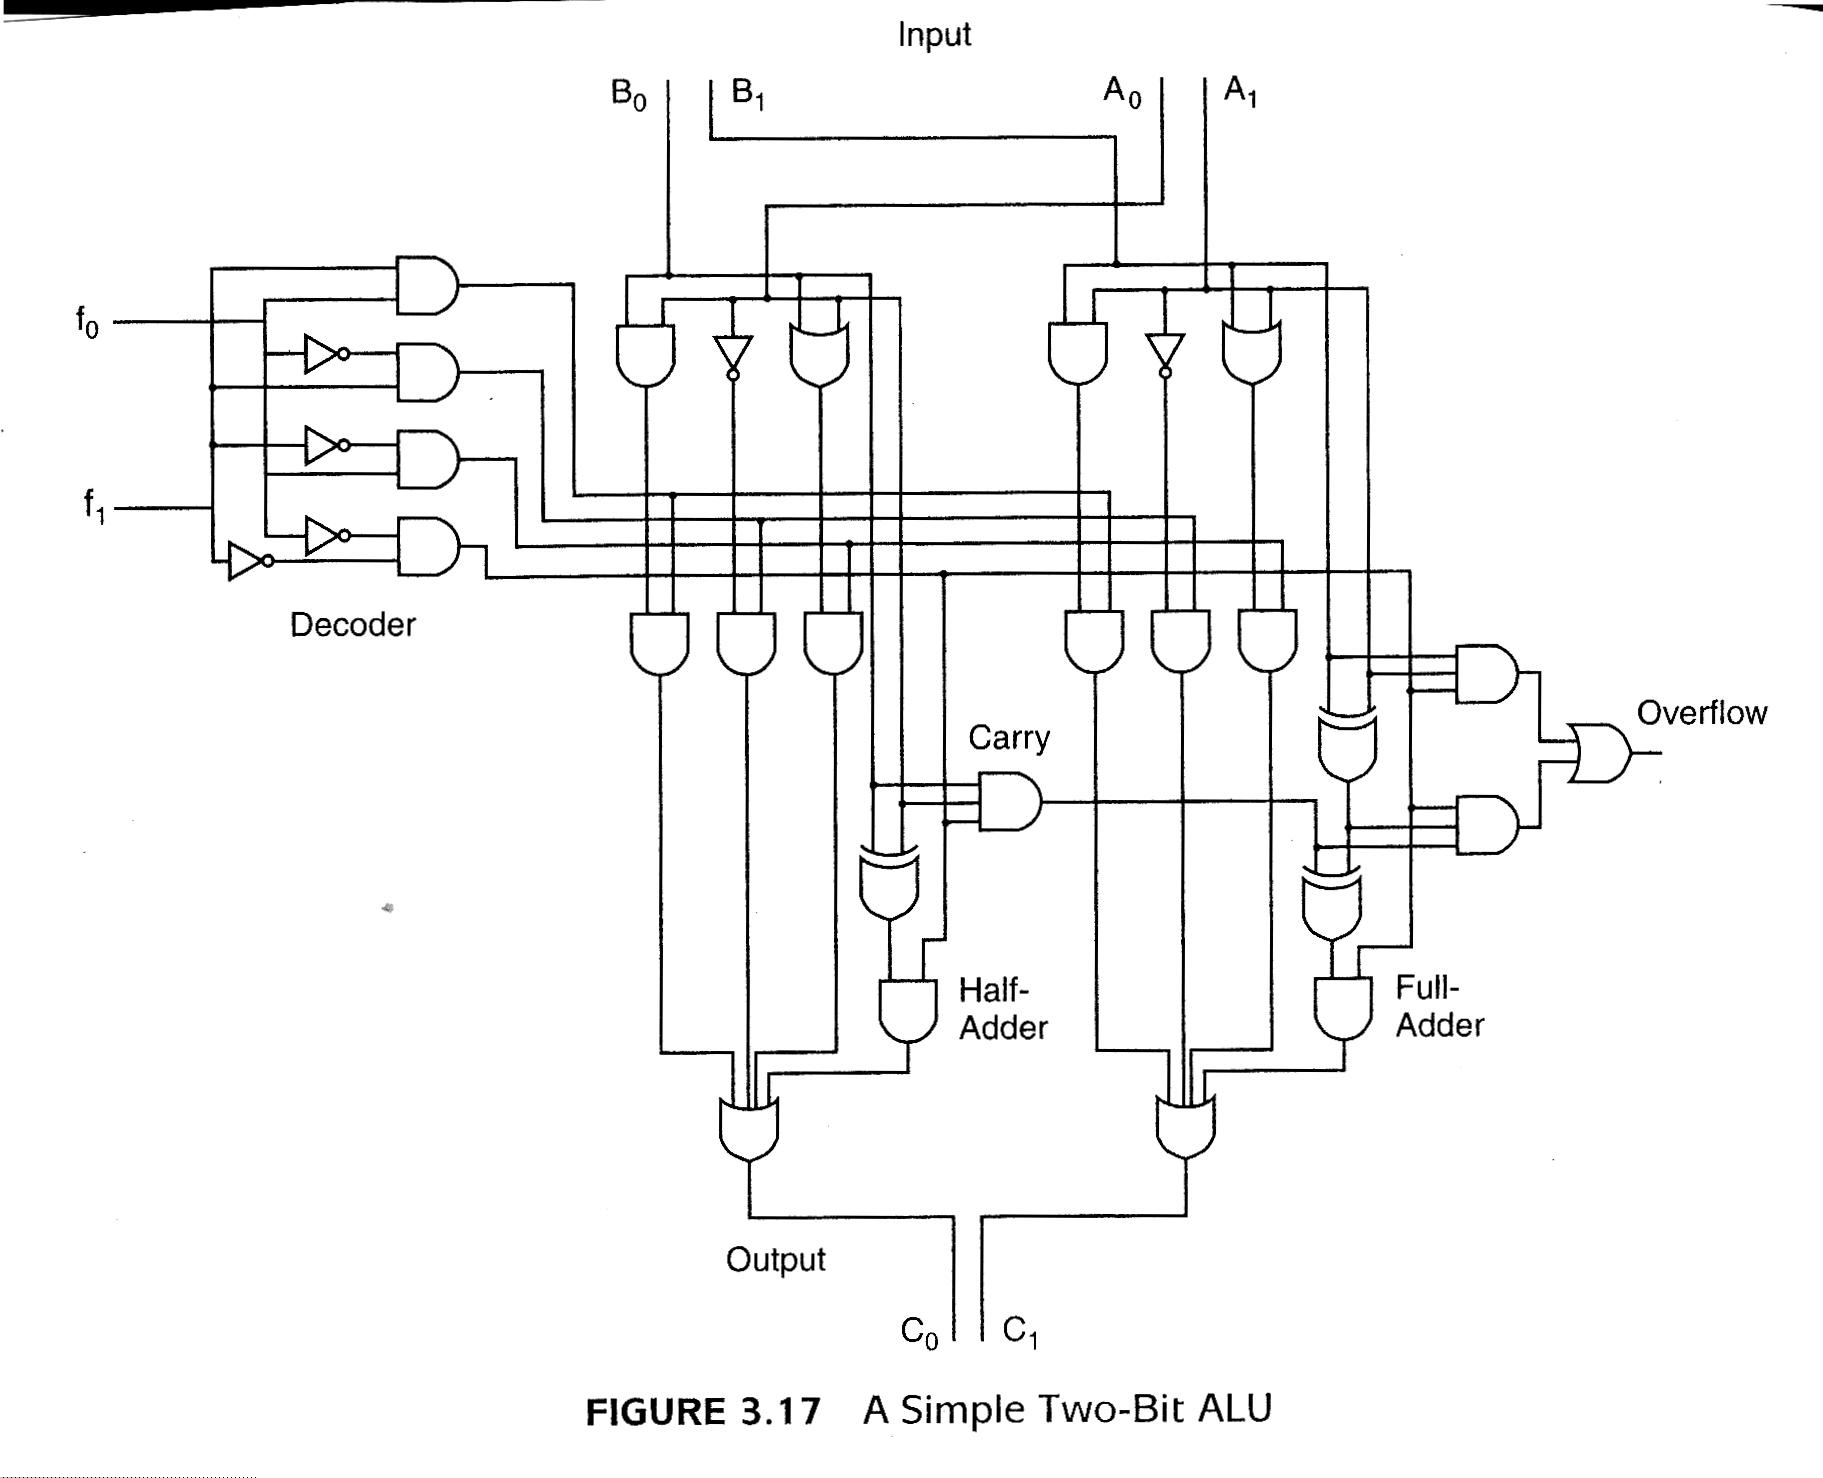 WRG-7159] Logic Diagram Of Alu on arm architecture block diagram, 1 bit alu circuit diagram, alu block diagram, 4-bit adder diagram,